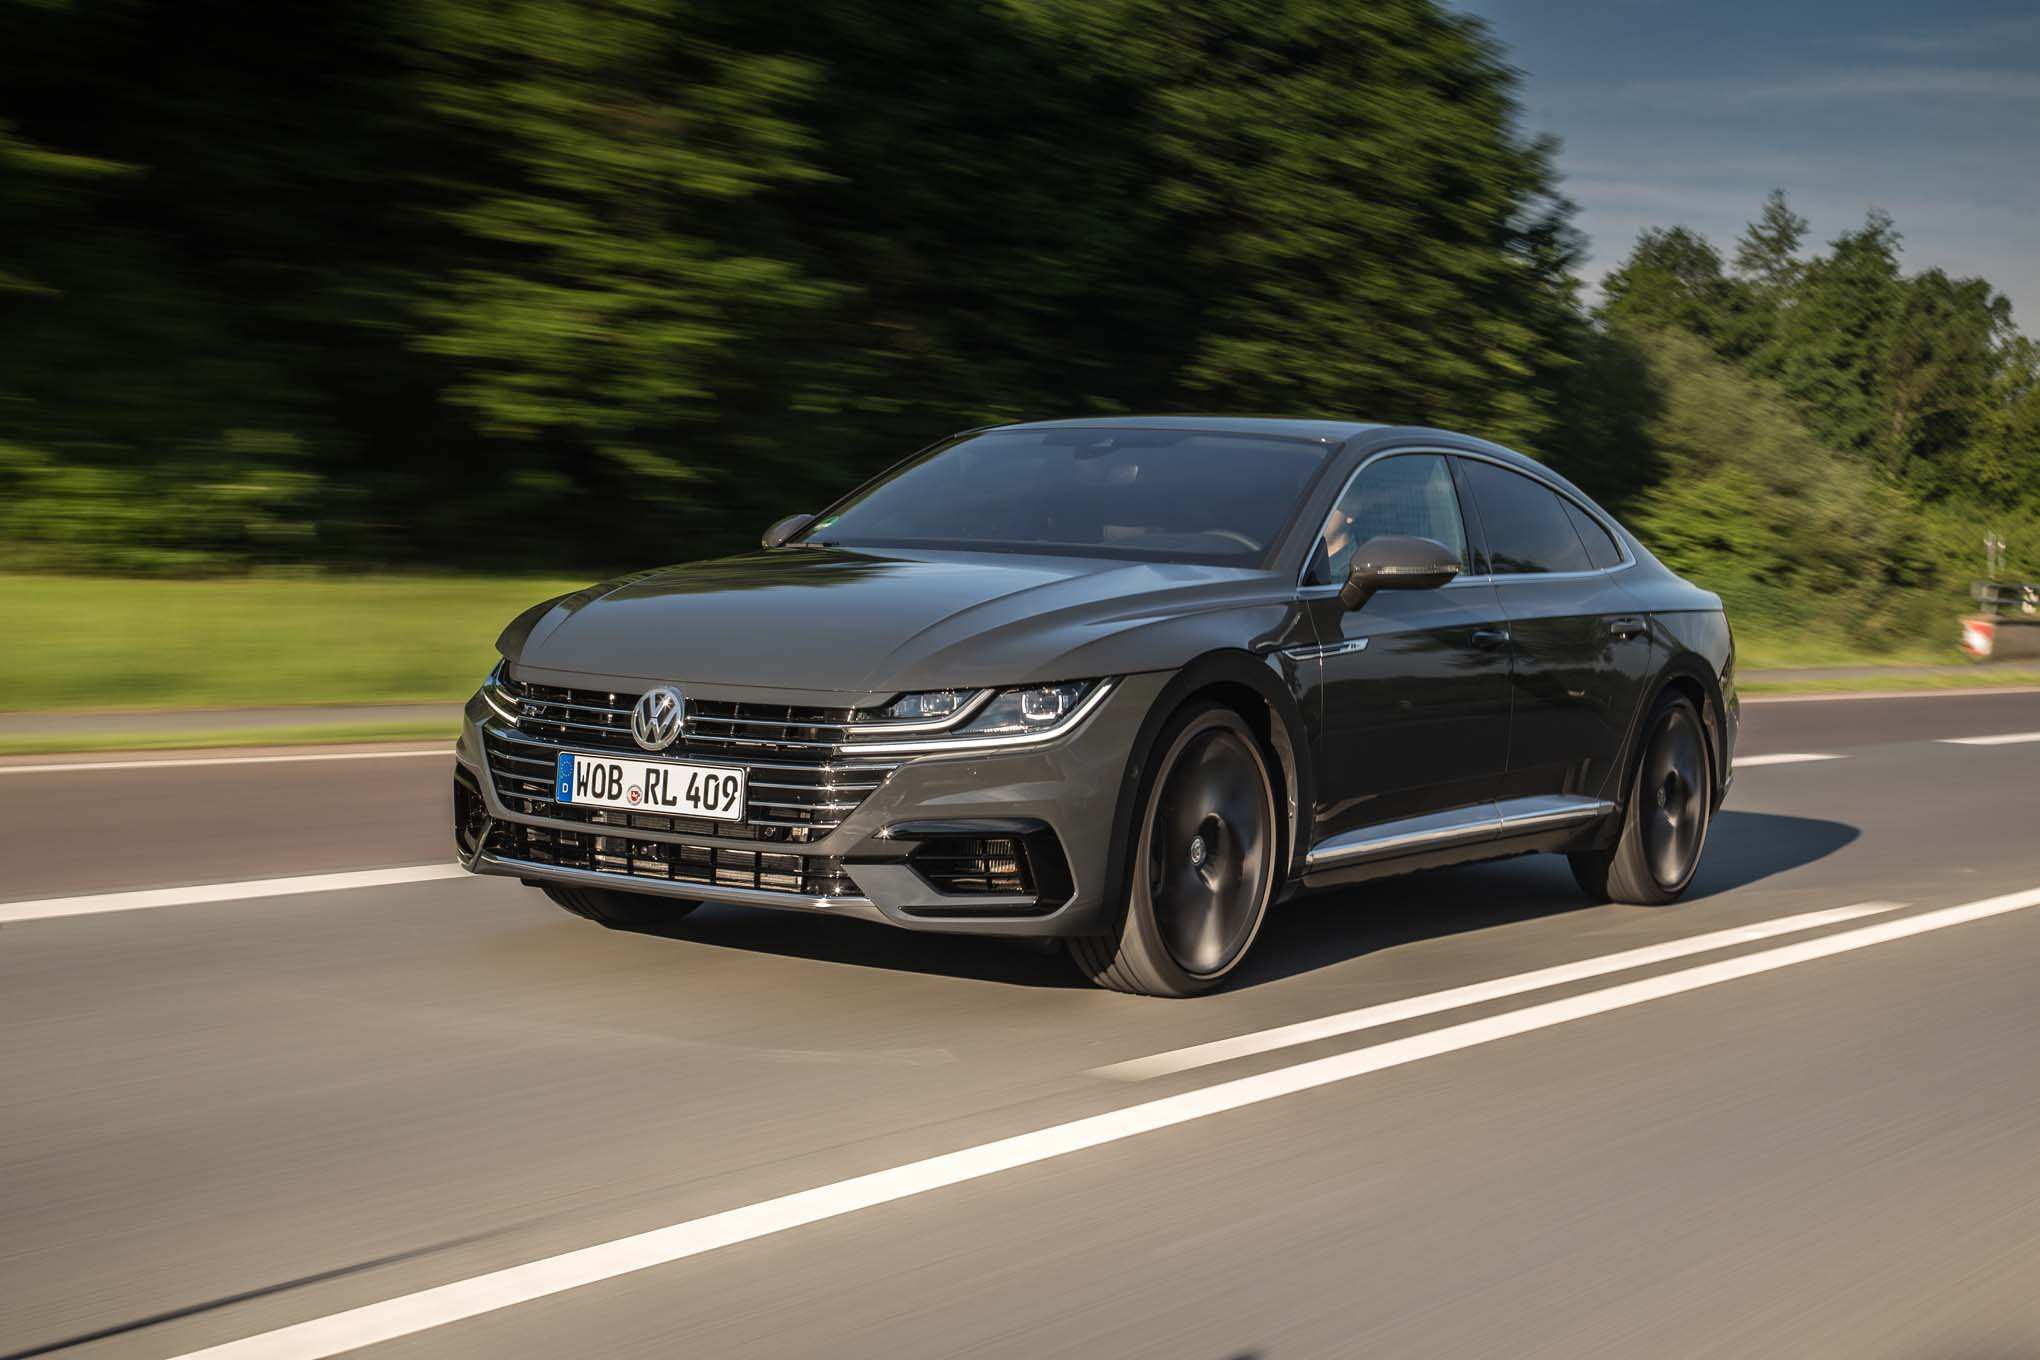 47 All New 2019 Vw Arteon Exterior by 2019 Vw Arteon